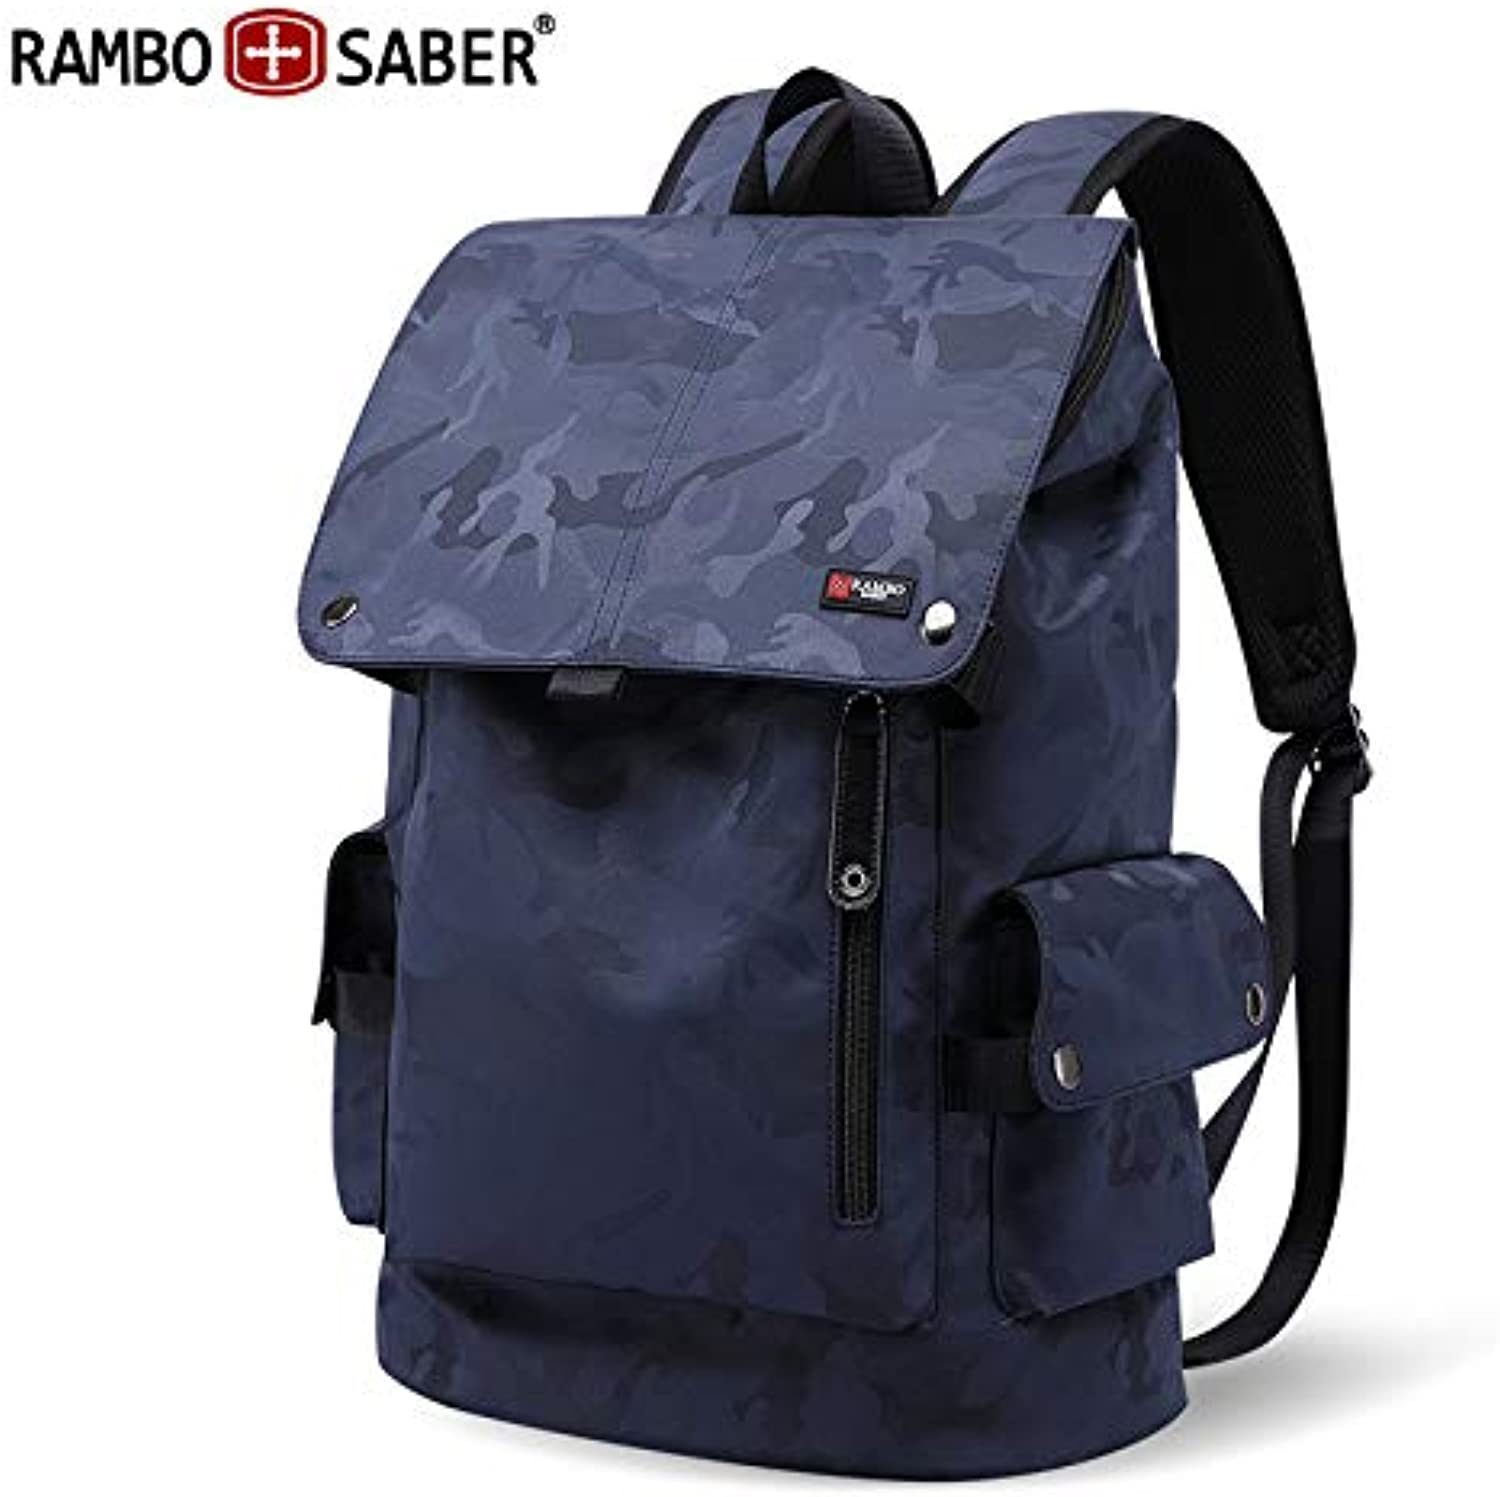 Rambo Swiss Army Knife Backpack Men's Travel Hiking Backpack Casual Computer Bag Trend College Student Bag